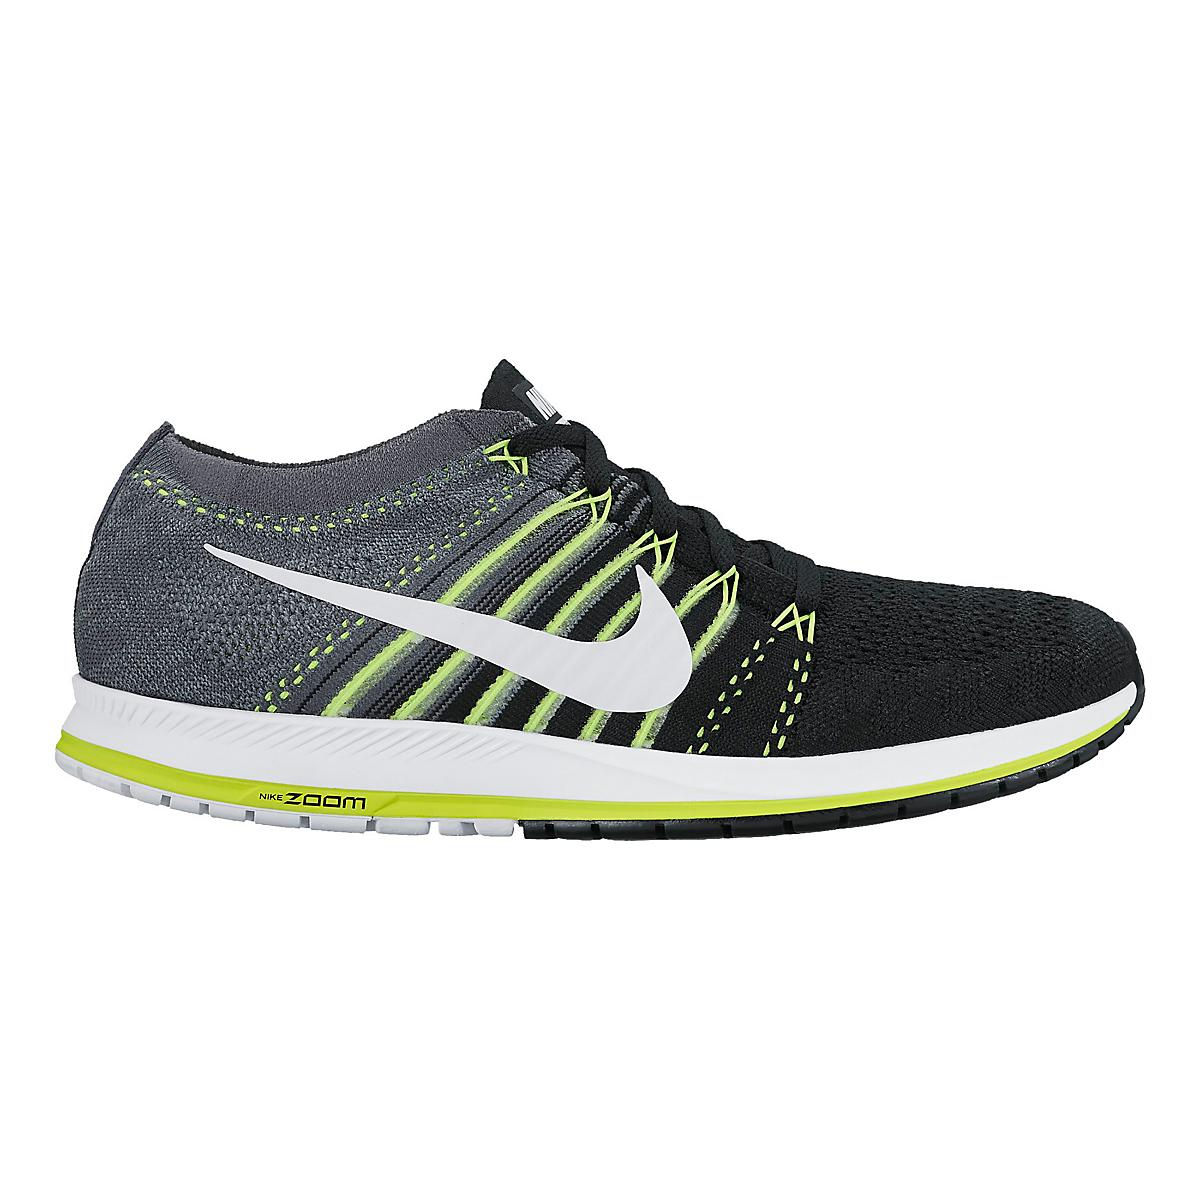 109e5904868b4 Nike Air Zoom Flyknit Streak Racing Shoe at Road Runner Sports